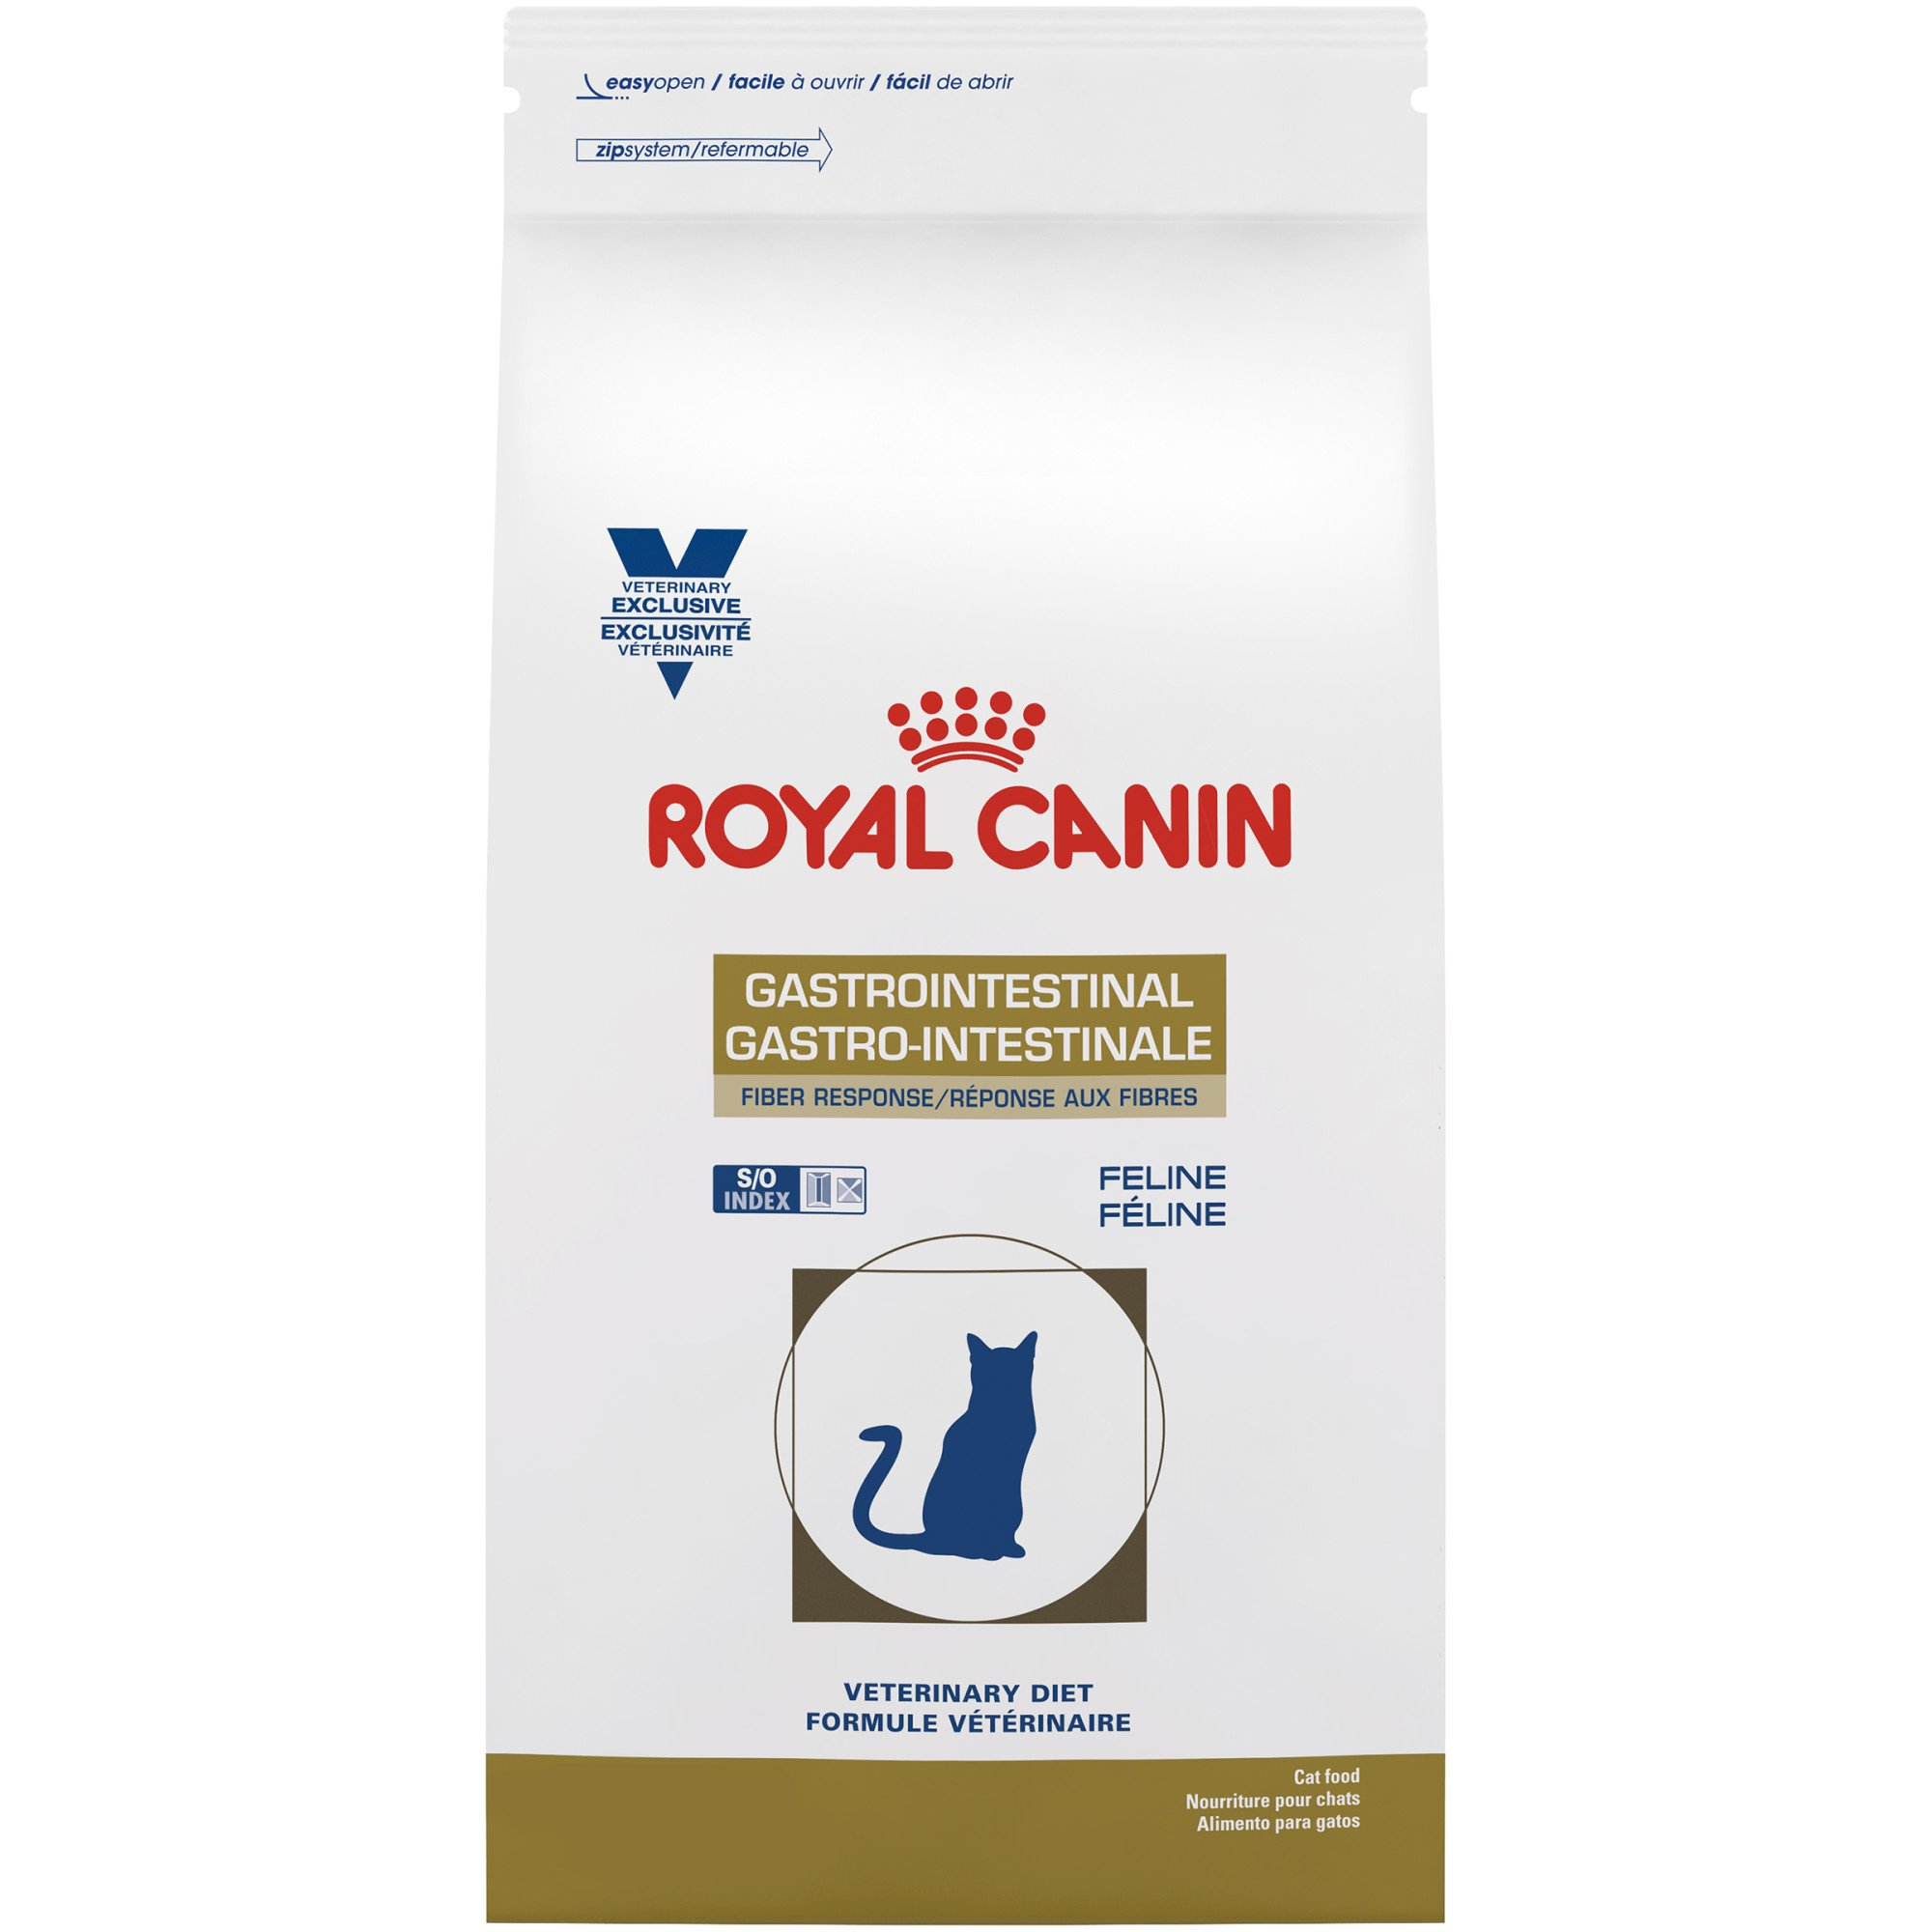 Royal Canin Gastro >> Royal Canin Veterinary Diet Gastrointestinal Fiber Response Dry Cat Food | Petco